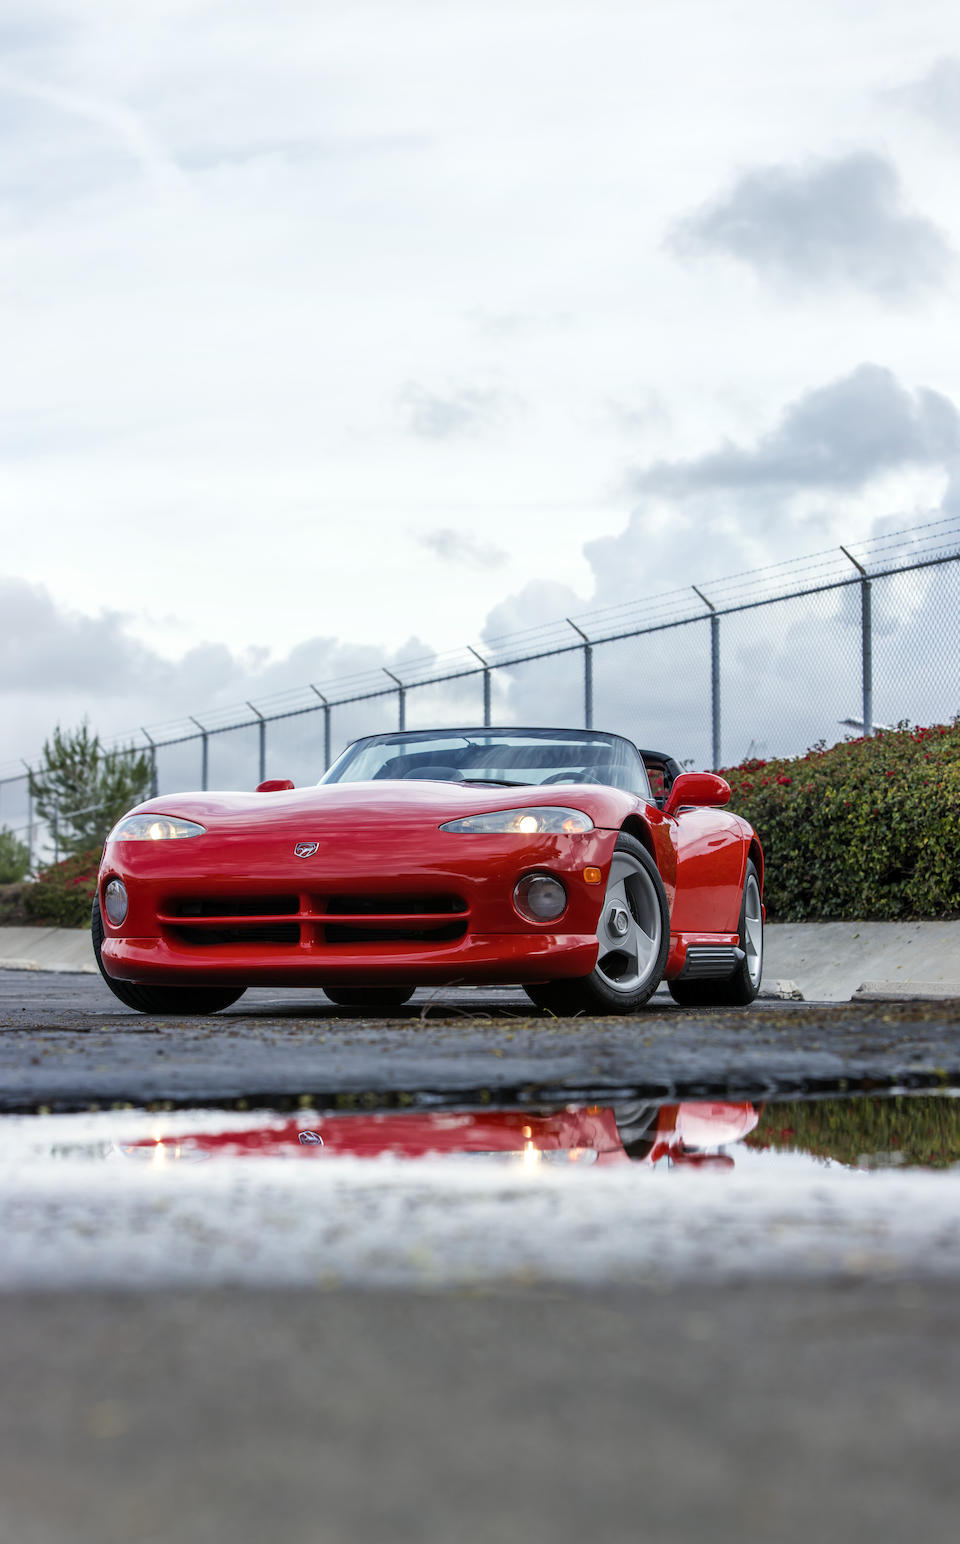 Bonhams has just sold a unique Dodge Viper RT/10 to an anonymous client for 285,500 USD. Apart from being the first Viper ever, the car used to belong to famous Ford/Chrysler executive Lee Iacocca.